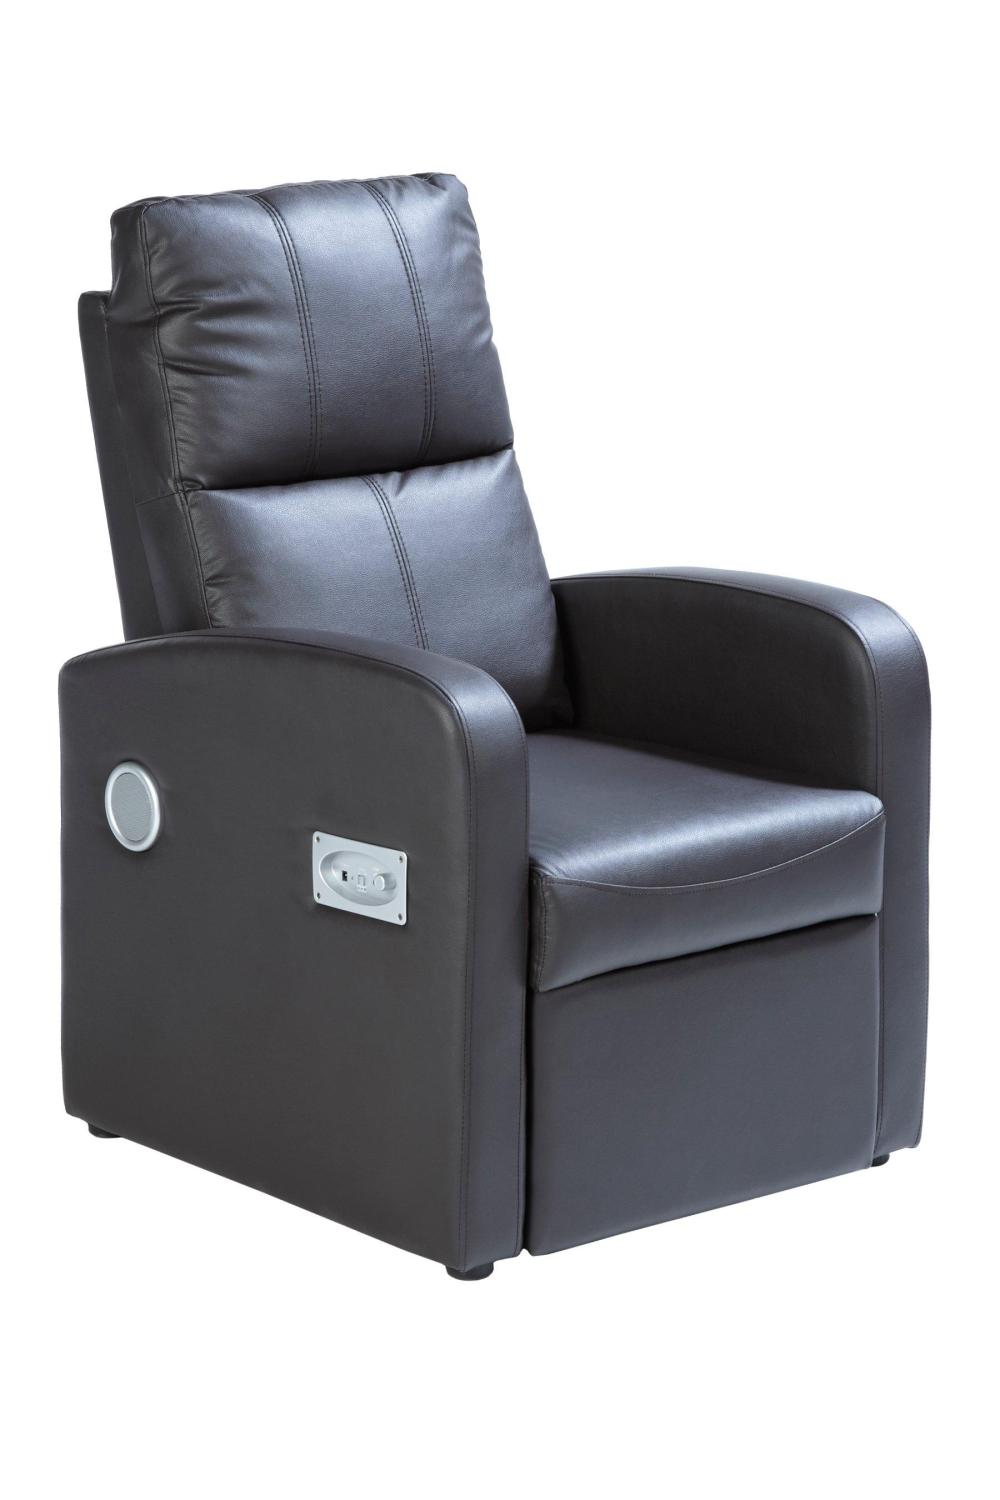 Faux Leather Pushback BlackBrown Recliner Chair with